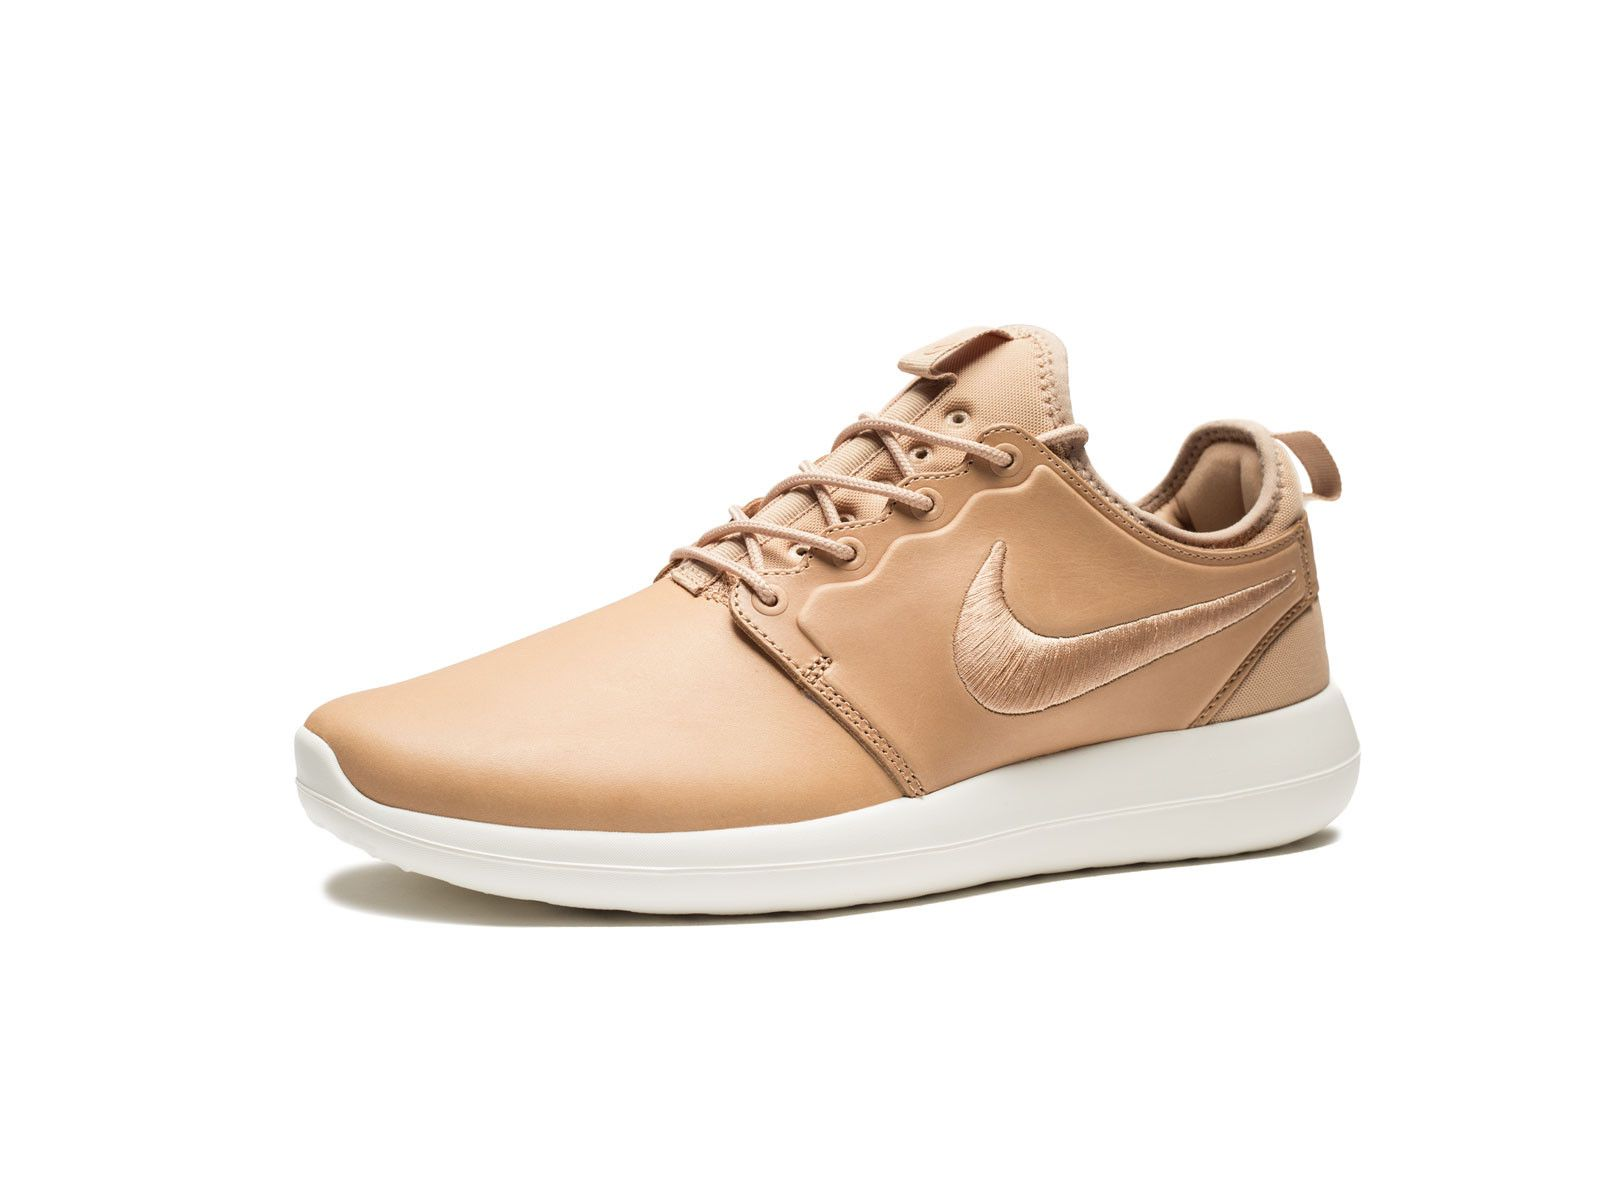 quemar mar Mediterráneo extraer  The Nike Roshe Two Releases In Gorgeous New Premium Leather Version